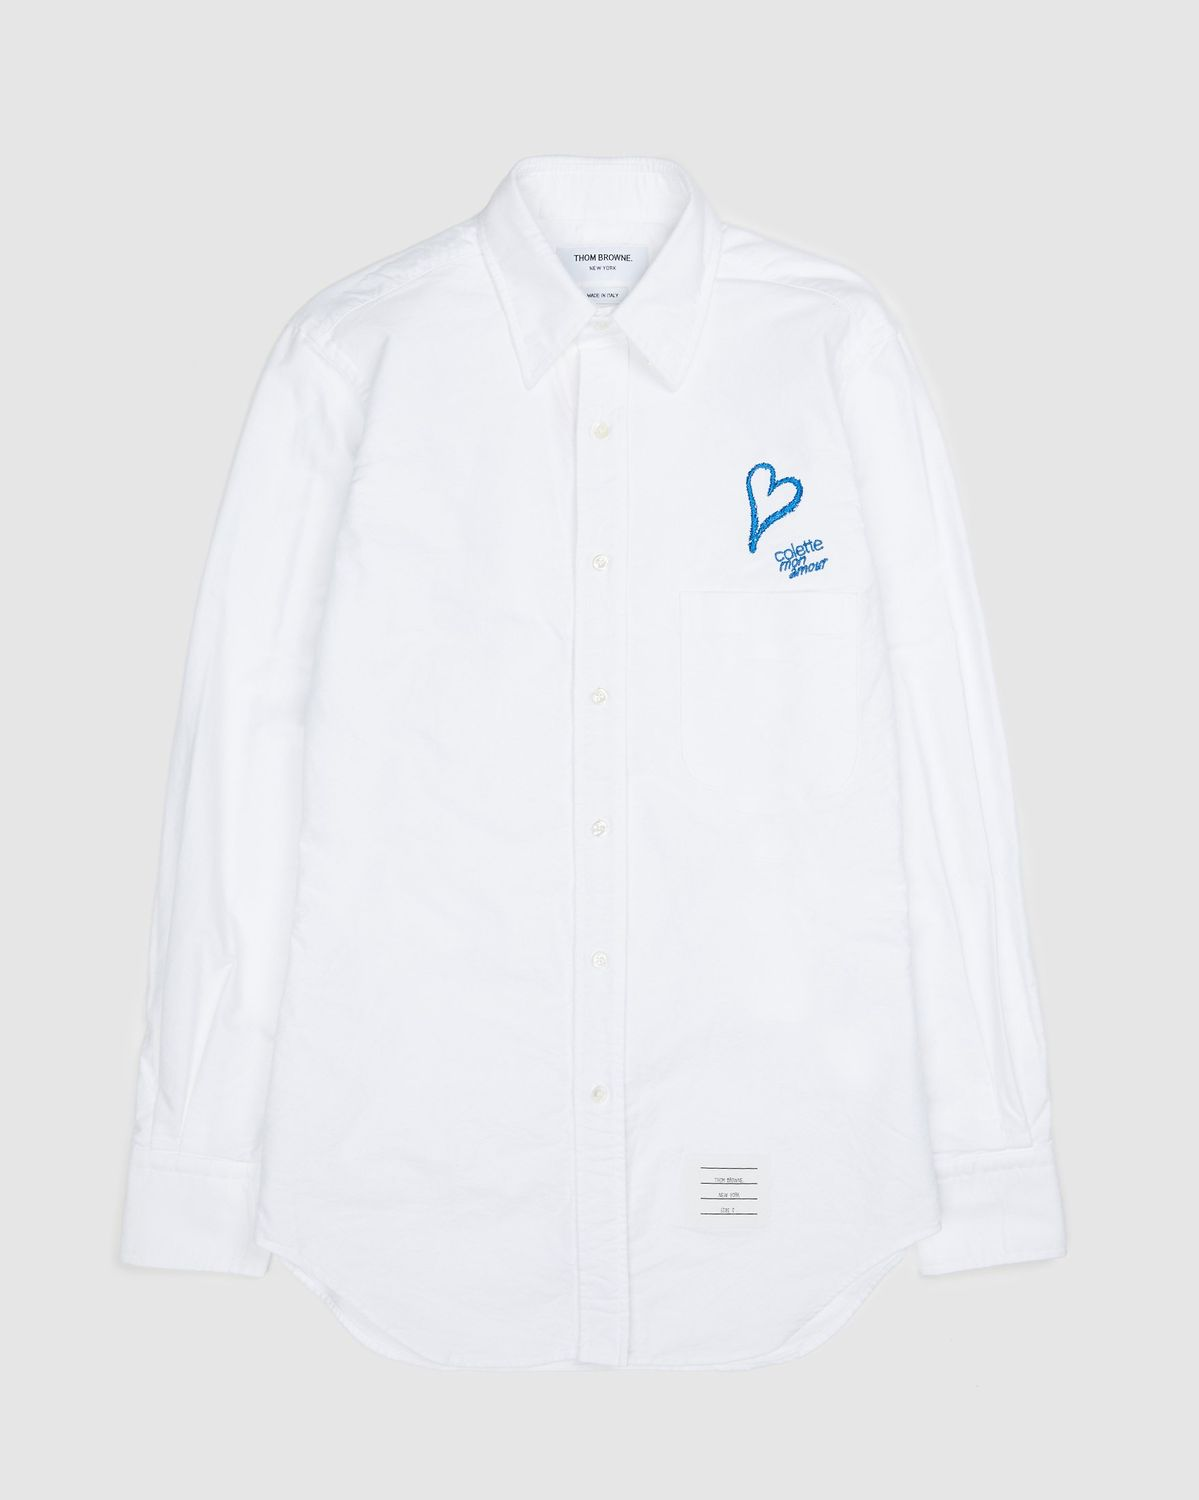 Colette Mon Amour x Thom Browne — White Heart Classic Shirt - Image 1